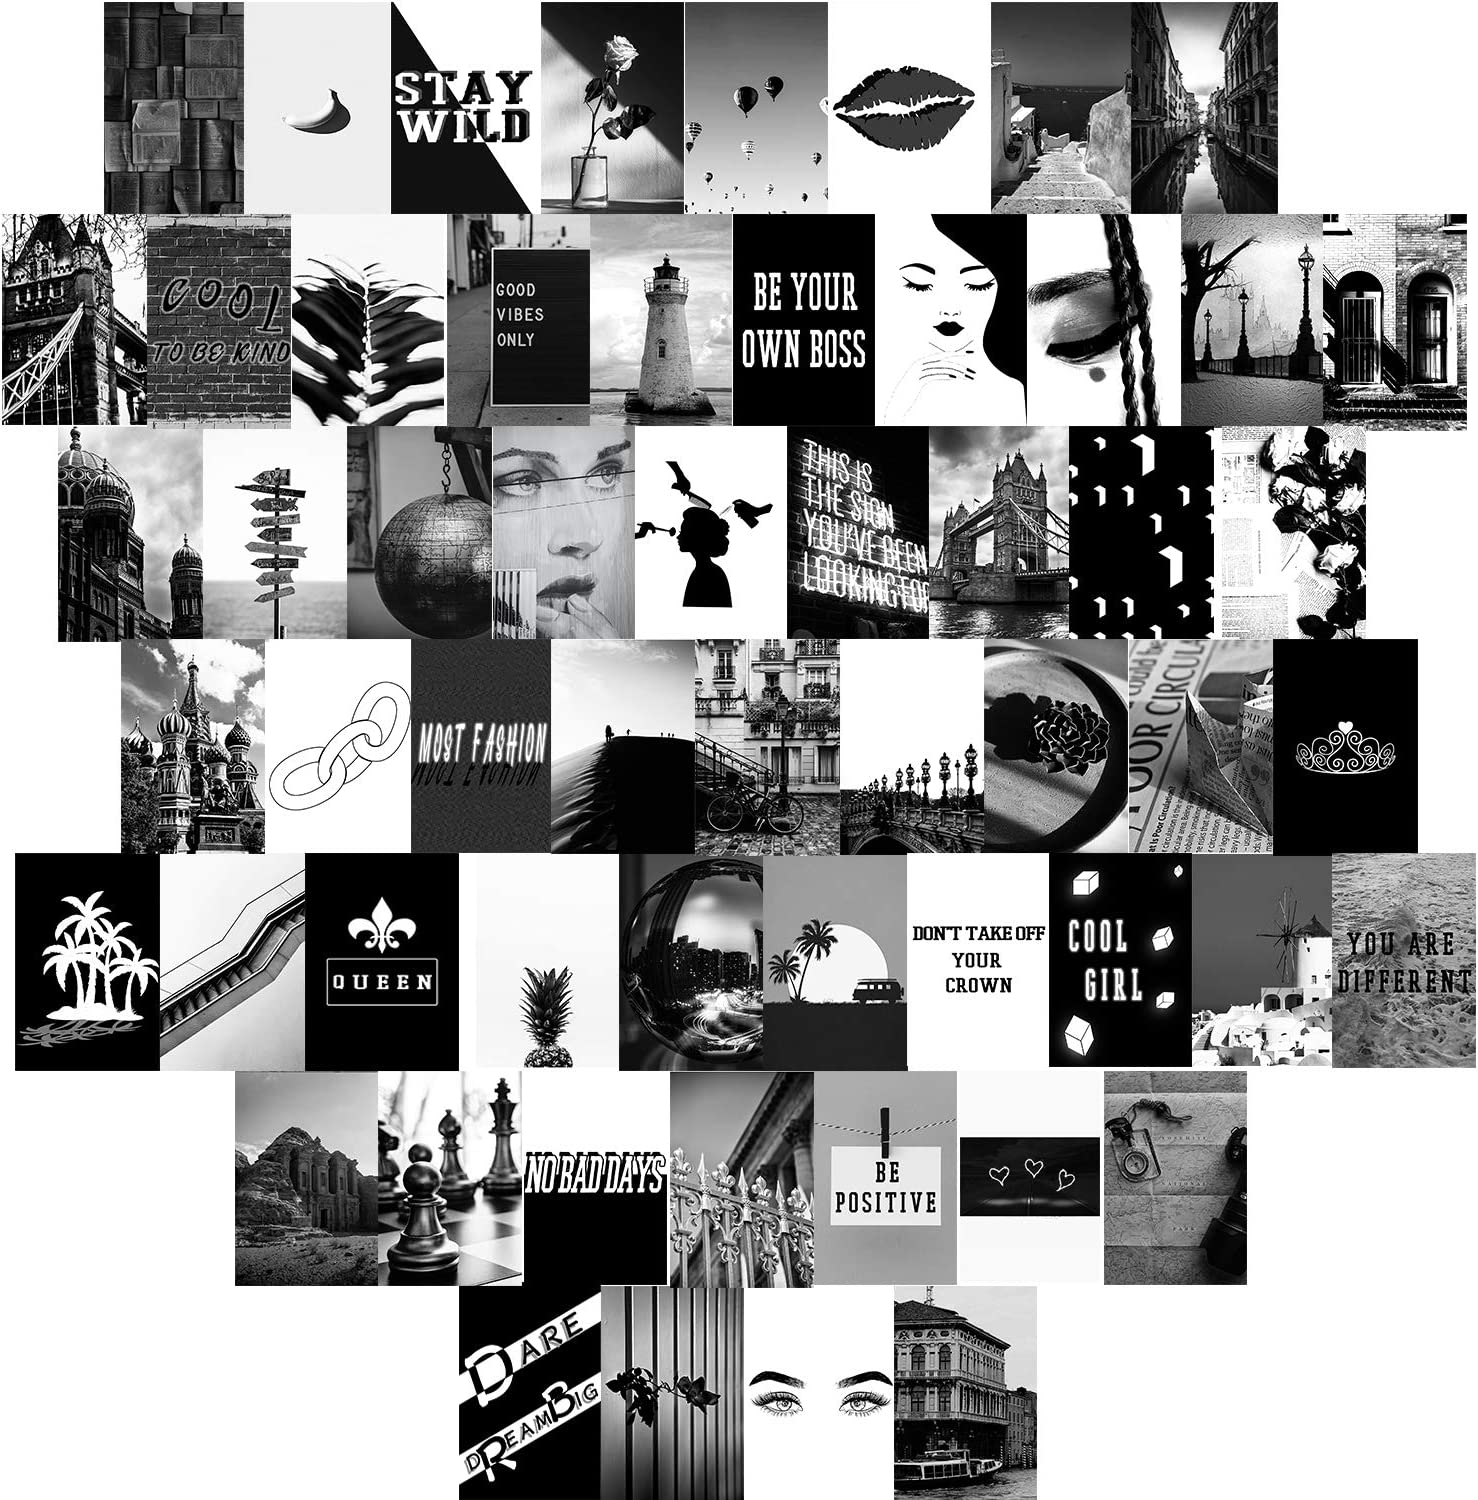 60 Pieces Wall Collage Kit Aesthetic Room Decor for Bedroom,Black and White Photo Art Pictures Collage Kit for Teen Girls and Women,4x6 inch Photo Collection